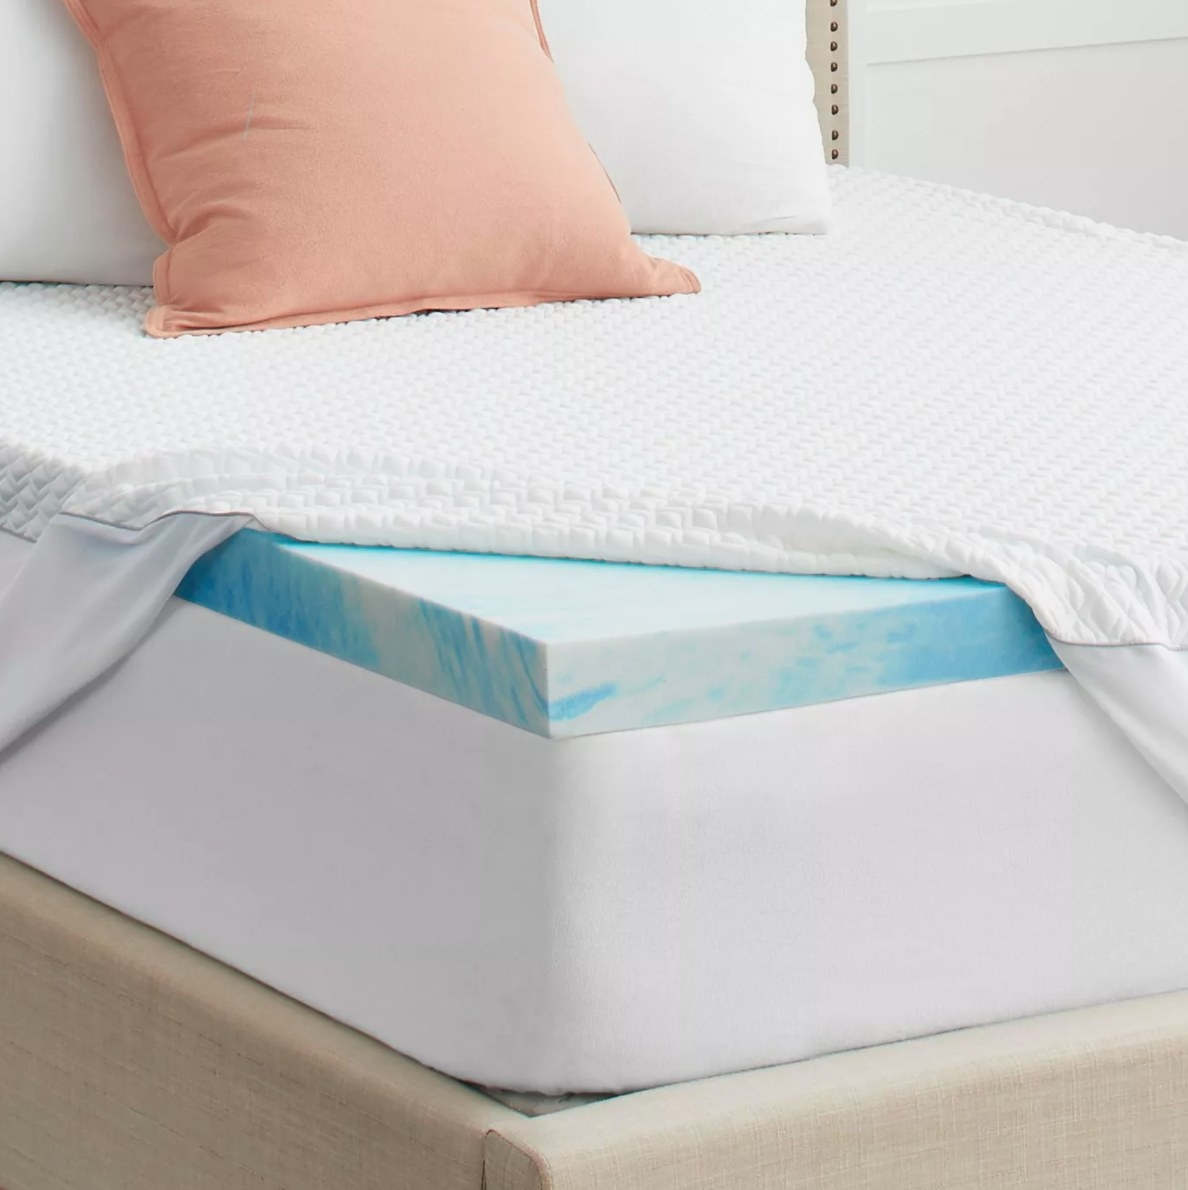 The blue and white marbled mattress topper